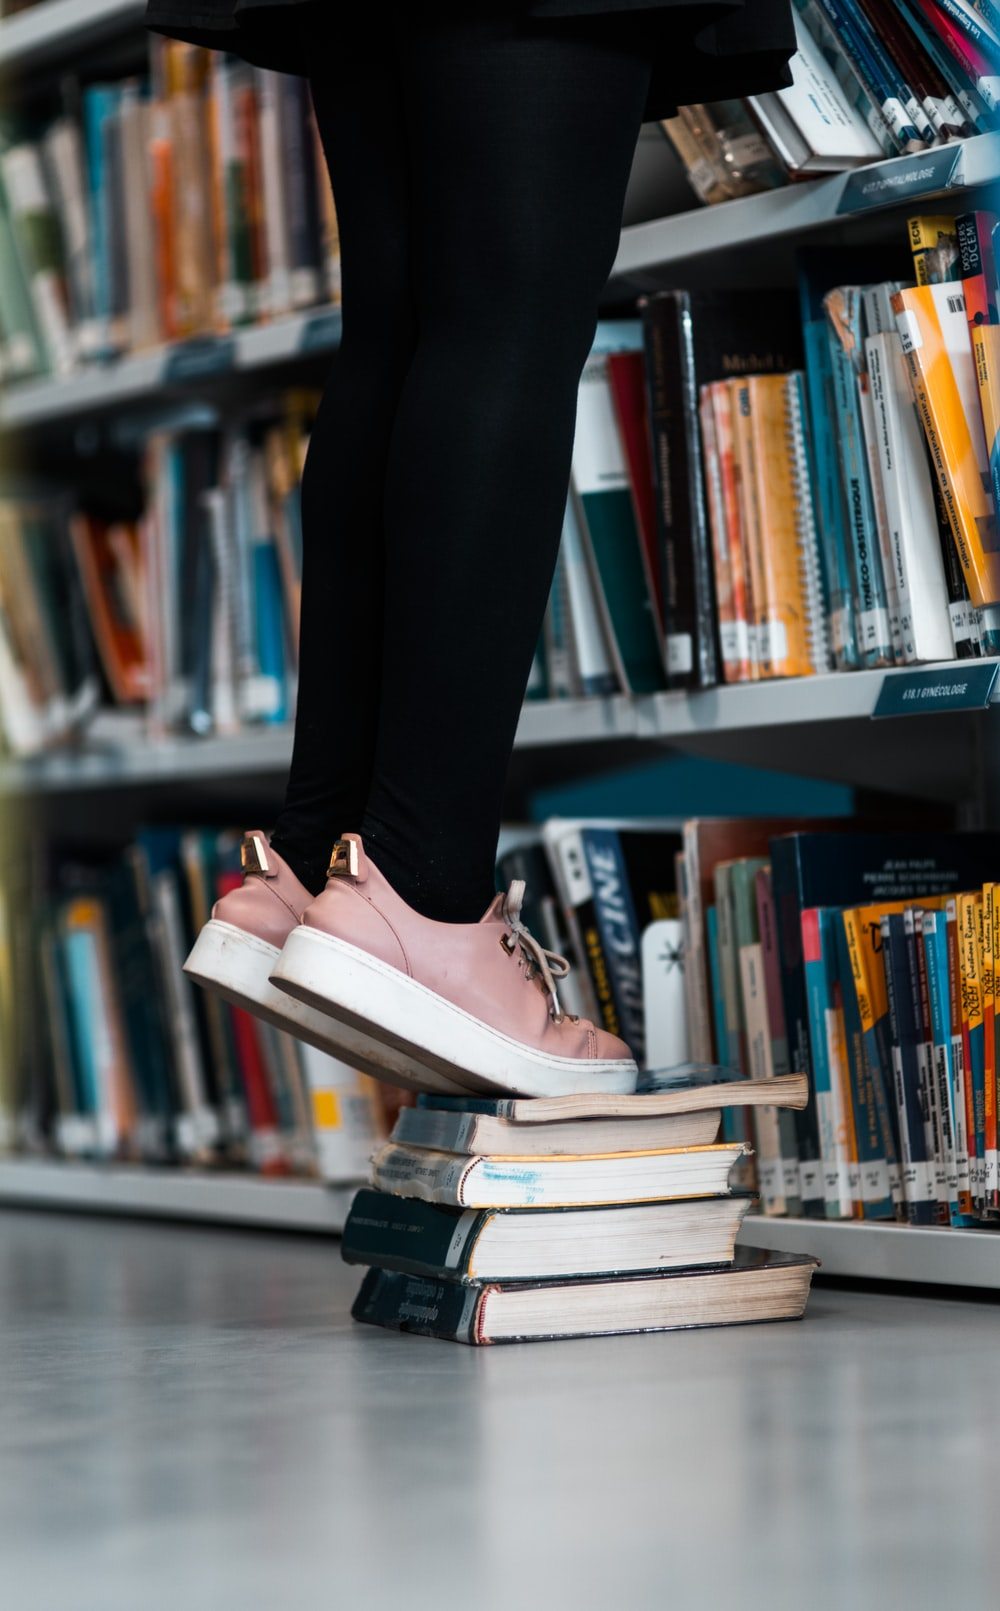 person using books for boosting beside bookcase with books